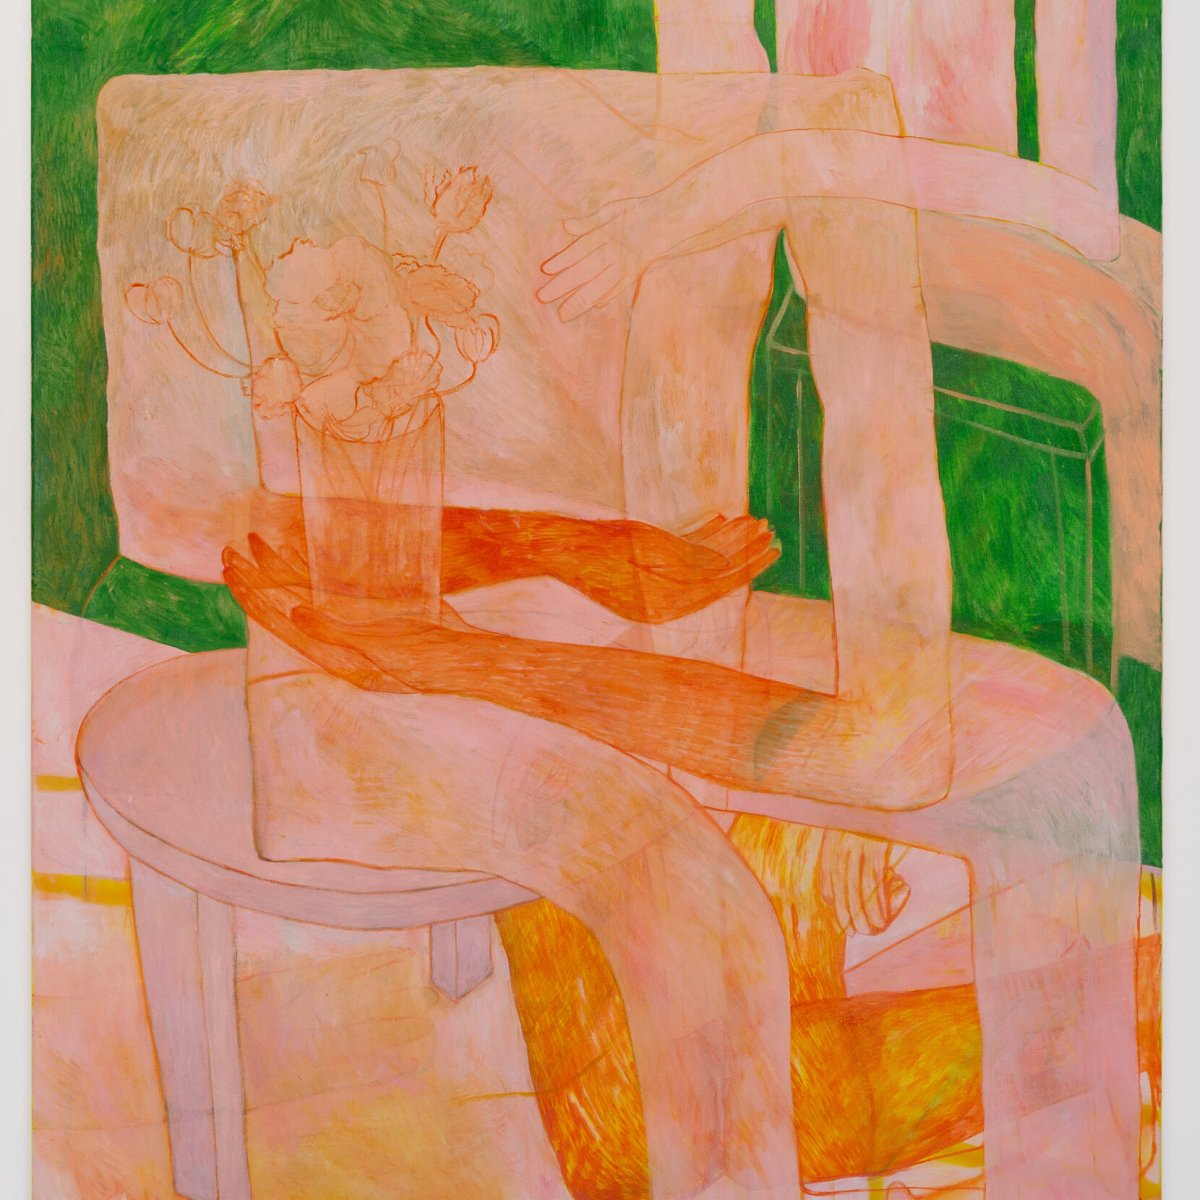 A figure is seated on a chair holding a vase, their limbs drawn using simple lines and shaded in such a way that confuses both dimension and permanence. What seems to be another figure behind them reaches either to or through them.